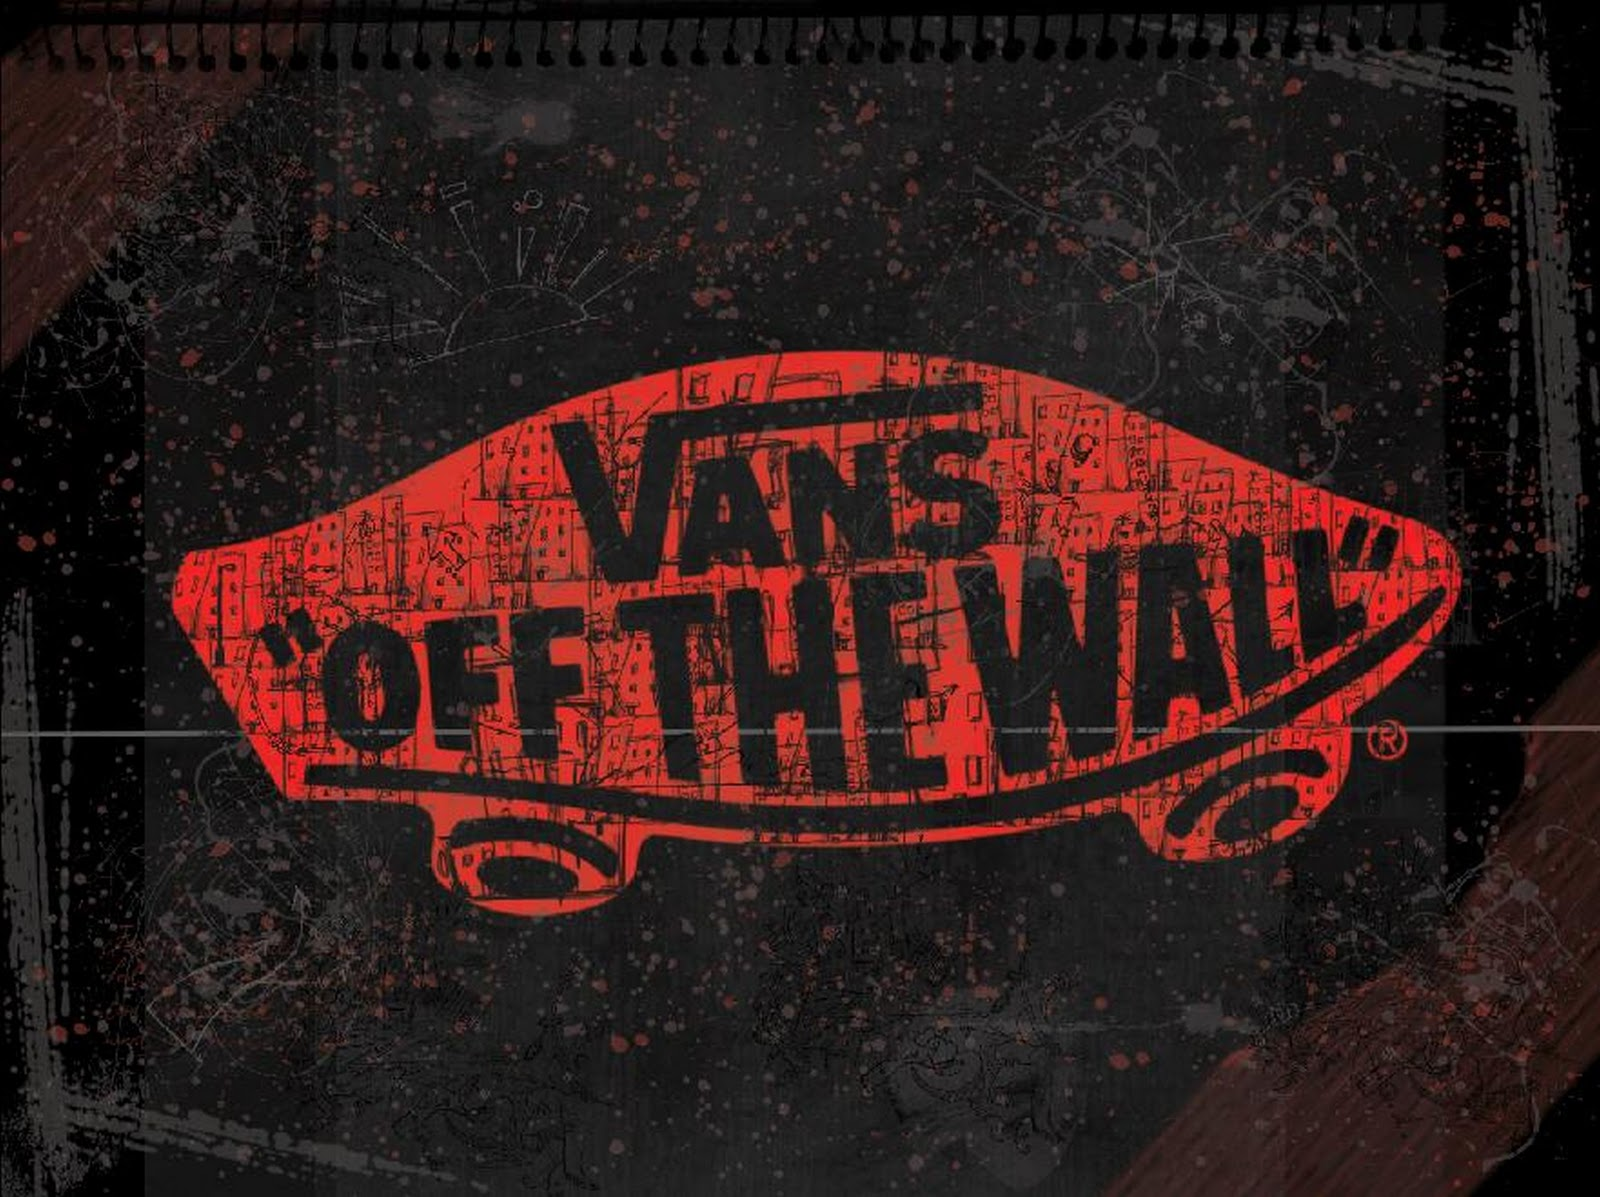 http://1.bp.blogspot.com/-wvsP4oIwKes/TWD5kIzA8LI/AAAAAAAAADo/TkQrg213dao/s1600/Vans_off_the_wall_wallpaper_by_Getn0better.jpg